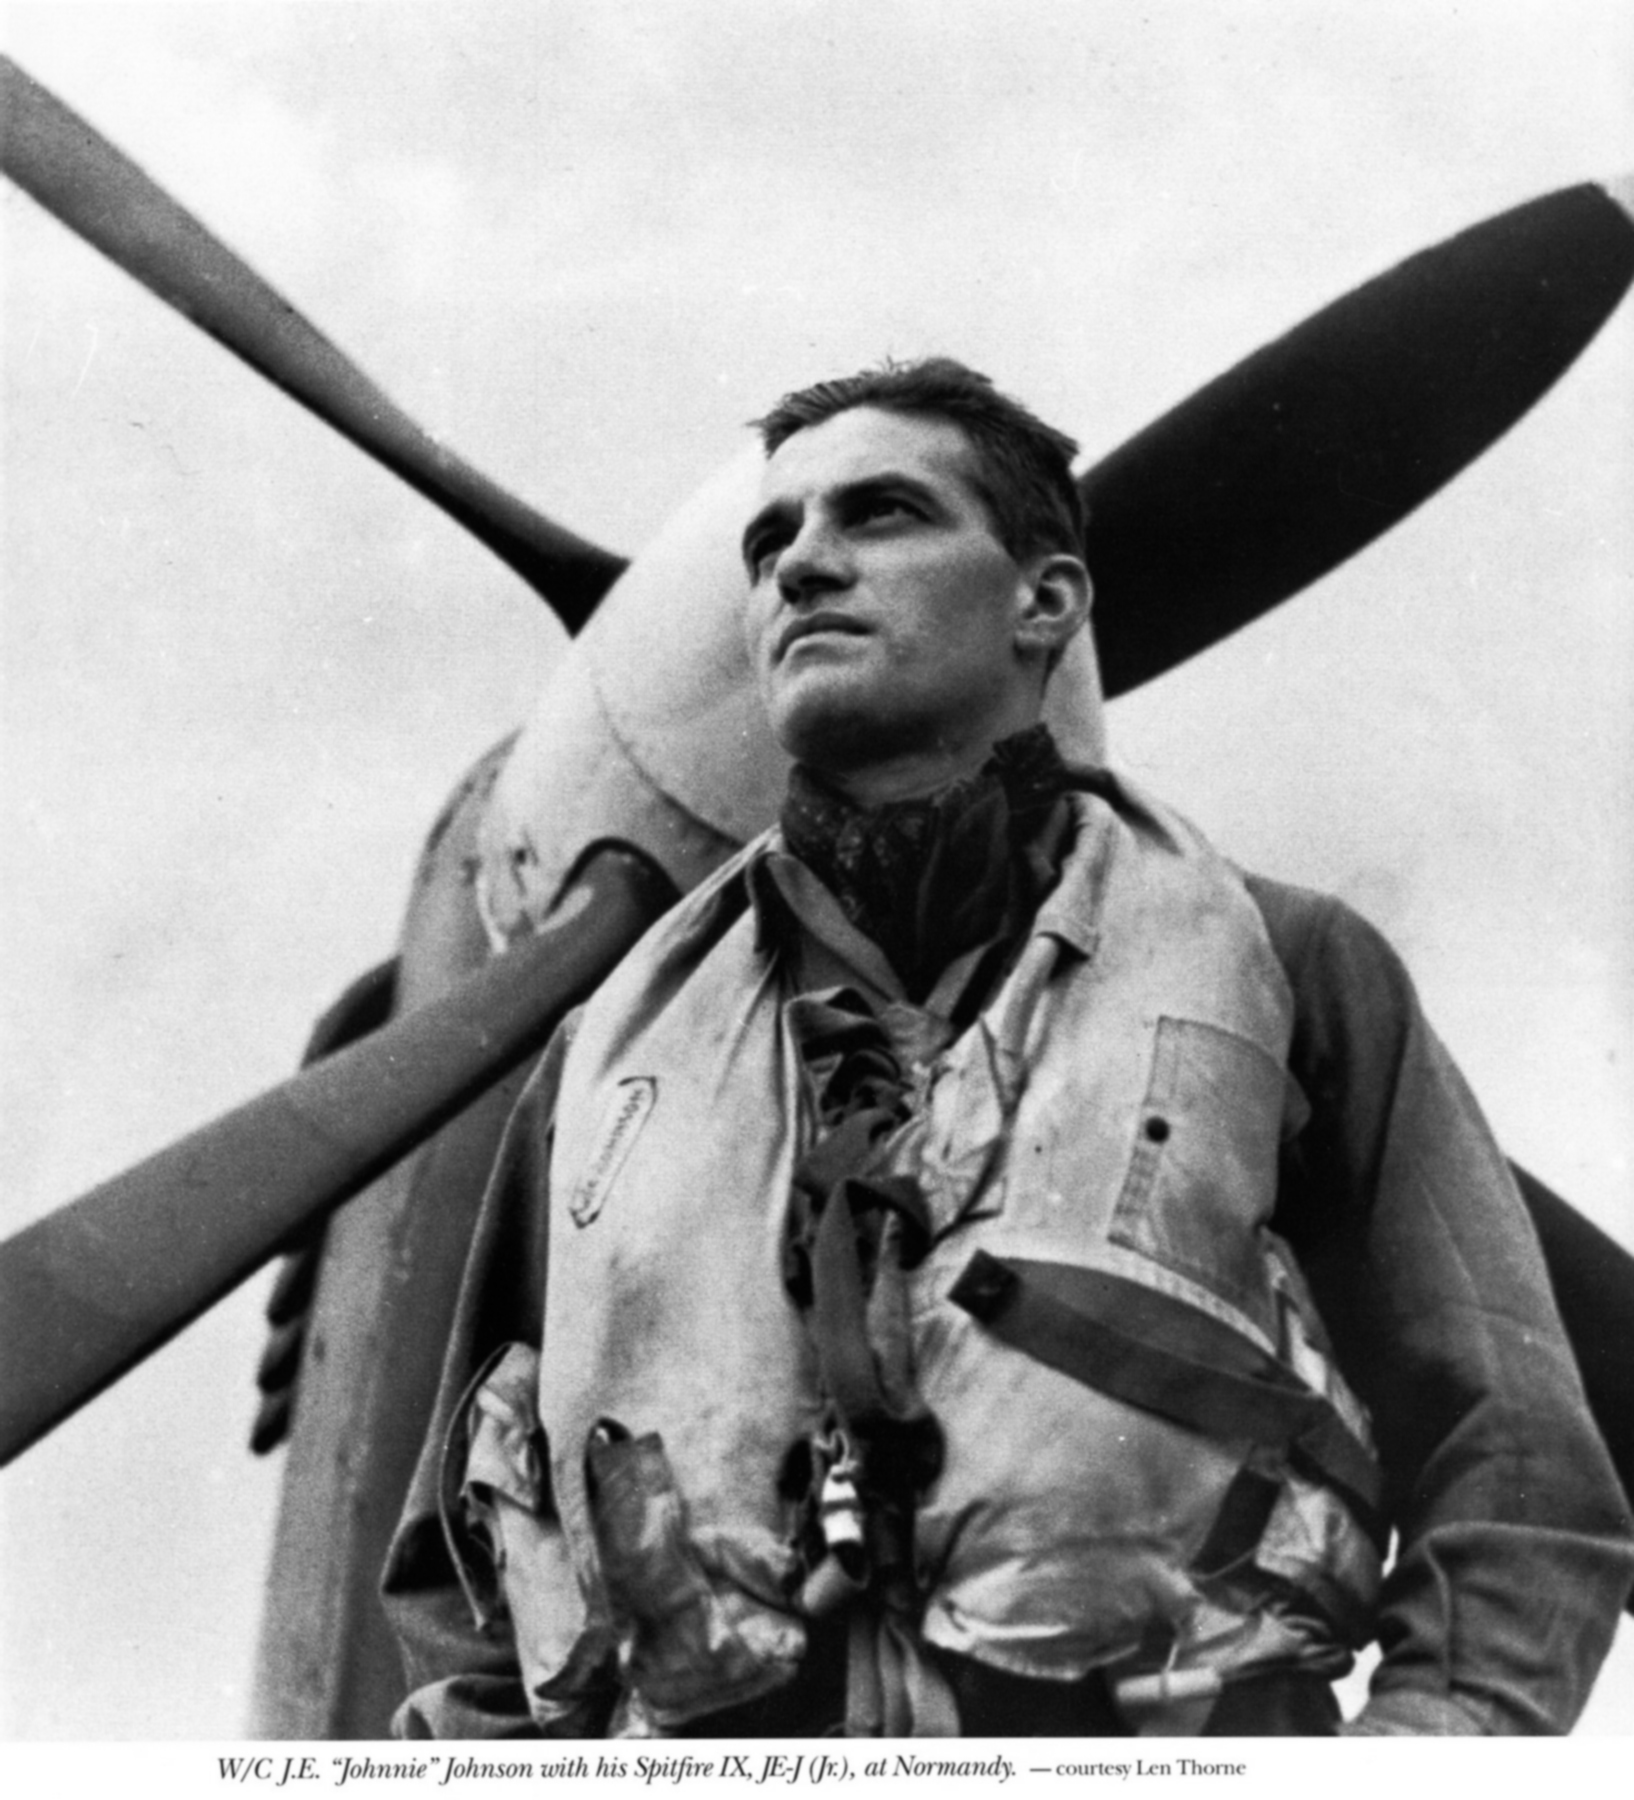 Aircrew RAF Ace Wg Cdr JE Johnnie Johnson DSO DFC with Spitfire MkIX JEJ Normandy 1944 01